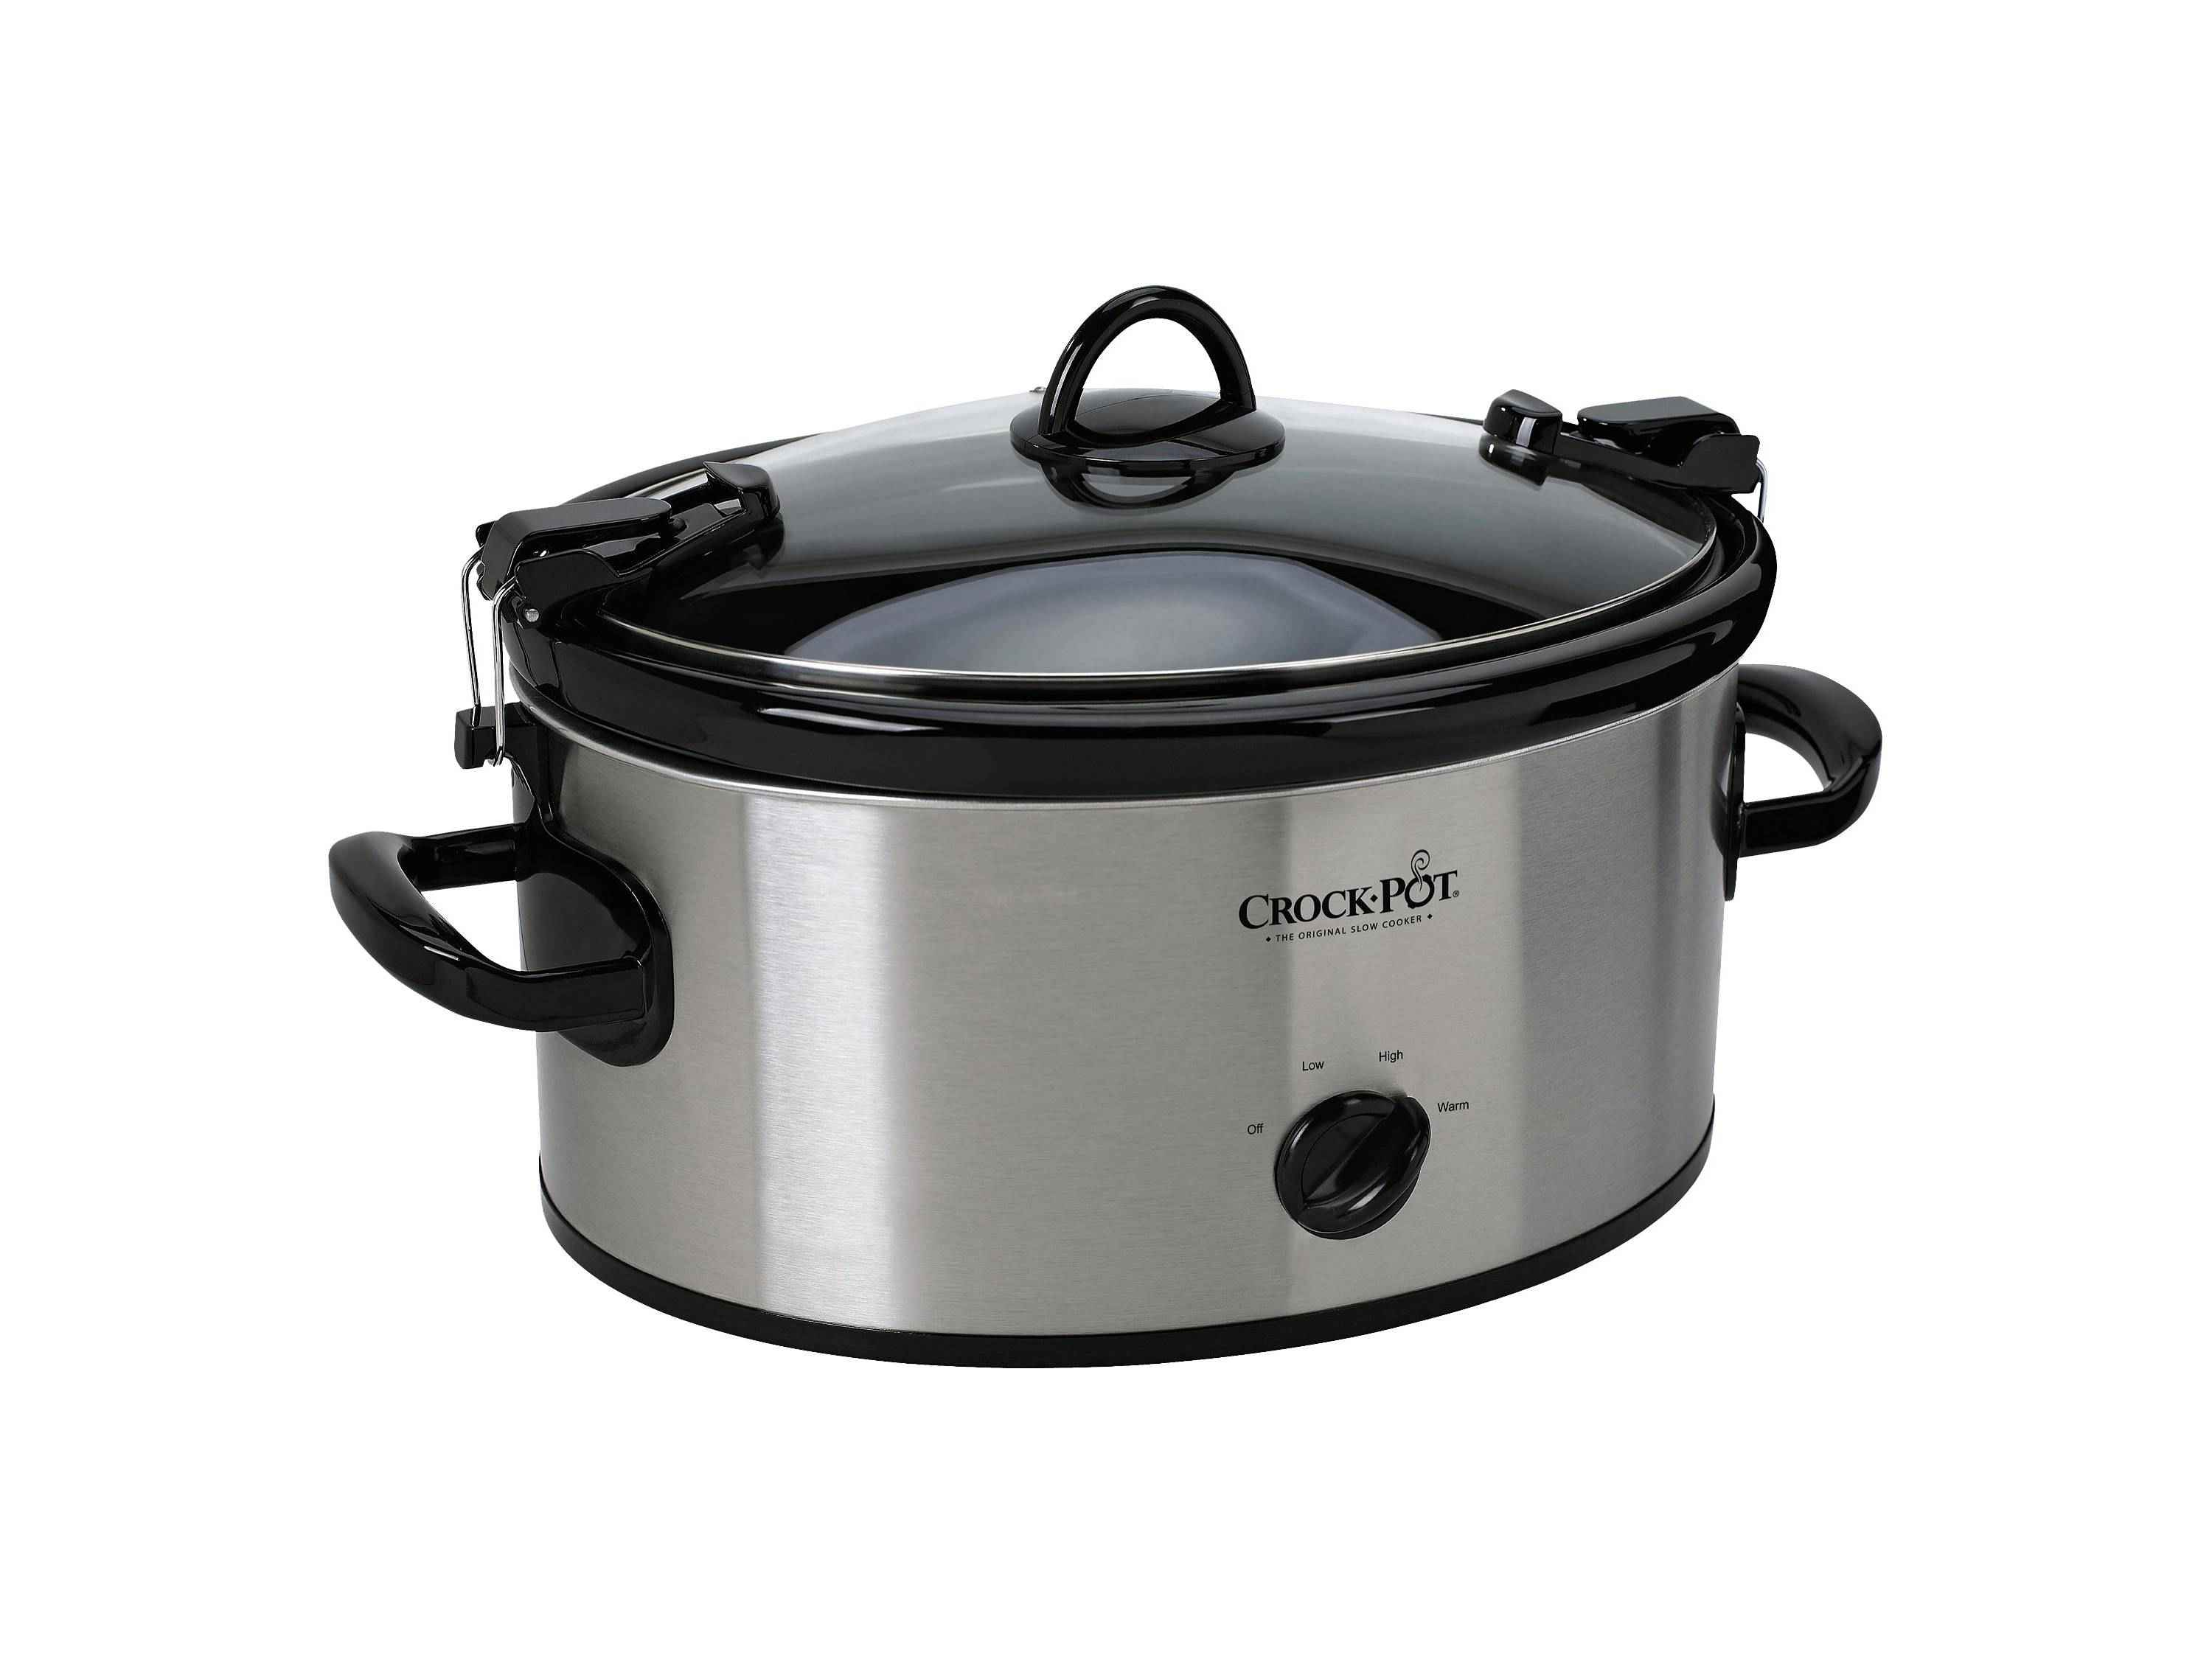 crock-pot 2-qt. hook up round slow cooker